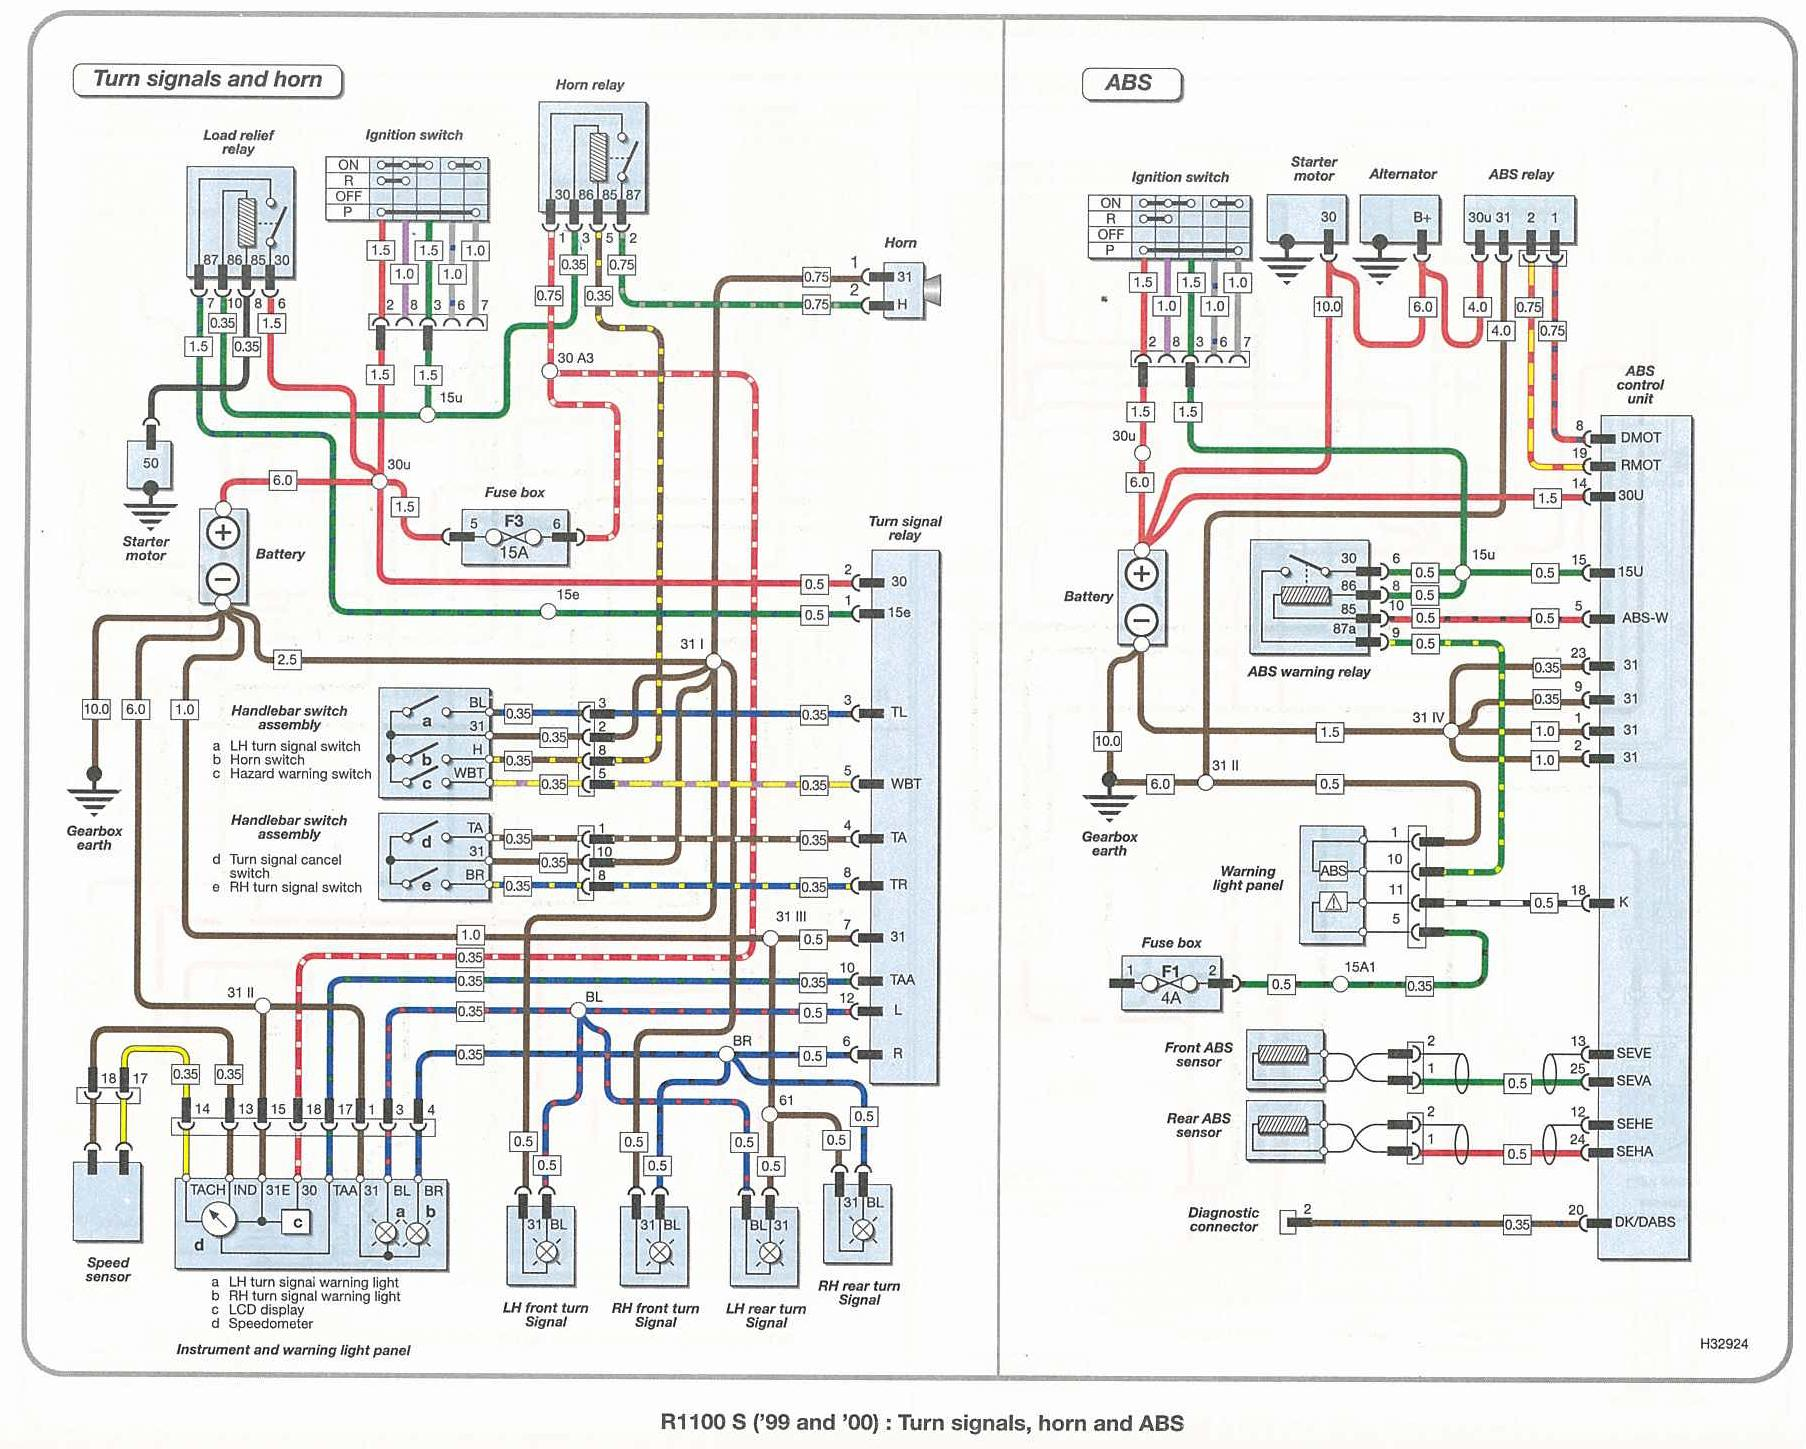 wiring03 bmw wiring diagram bmw wiring diagrams e39 \u2022 wiring diagrams j 2014 vw jetta radio wiring diagram at alyssarenee.co